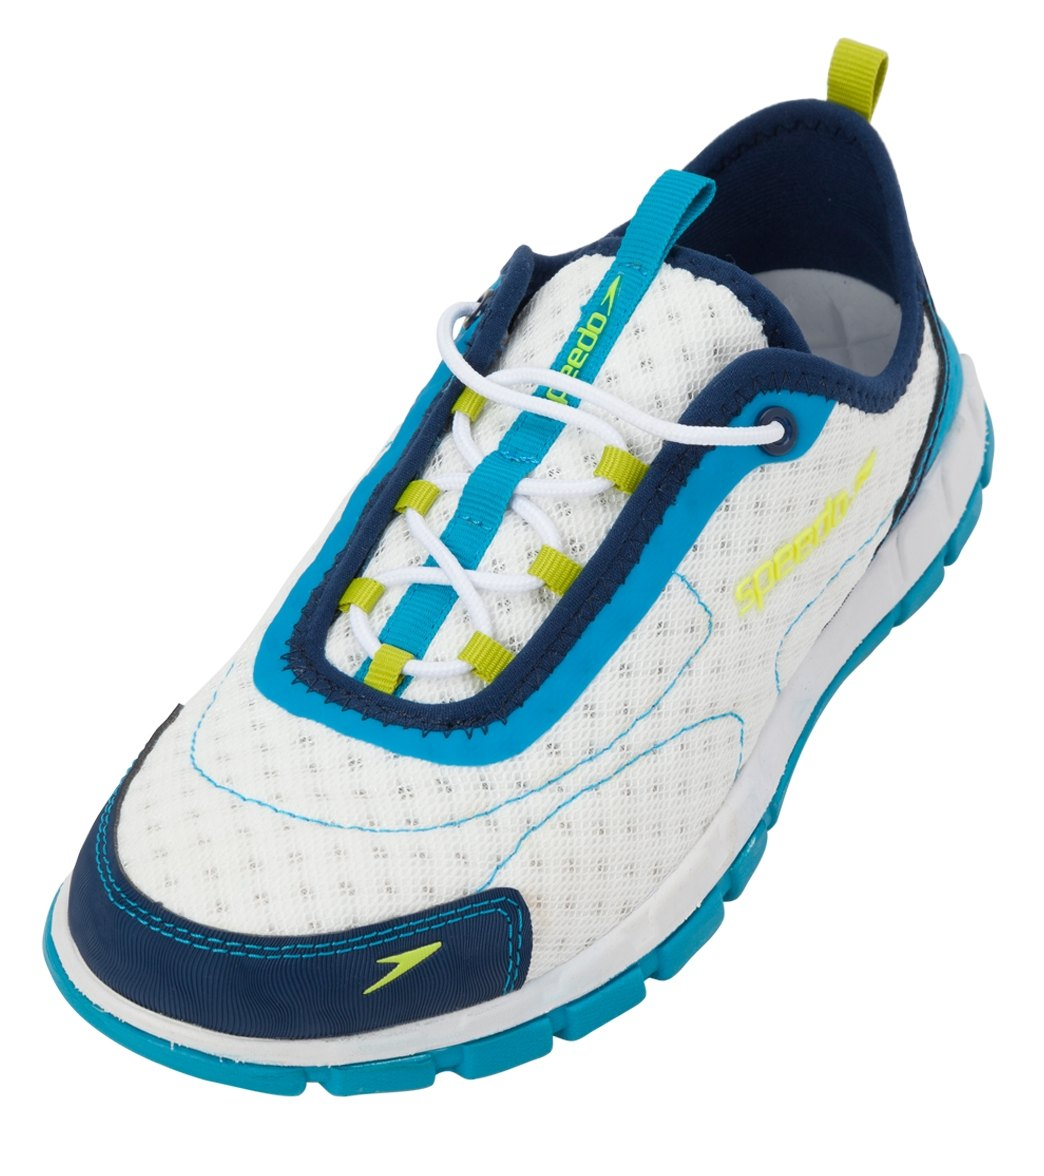 30a900d012ce Speedo Women s Upswell Water Shoes at SwimOutlet.com - Free ...